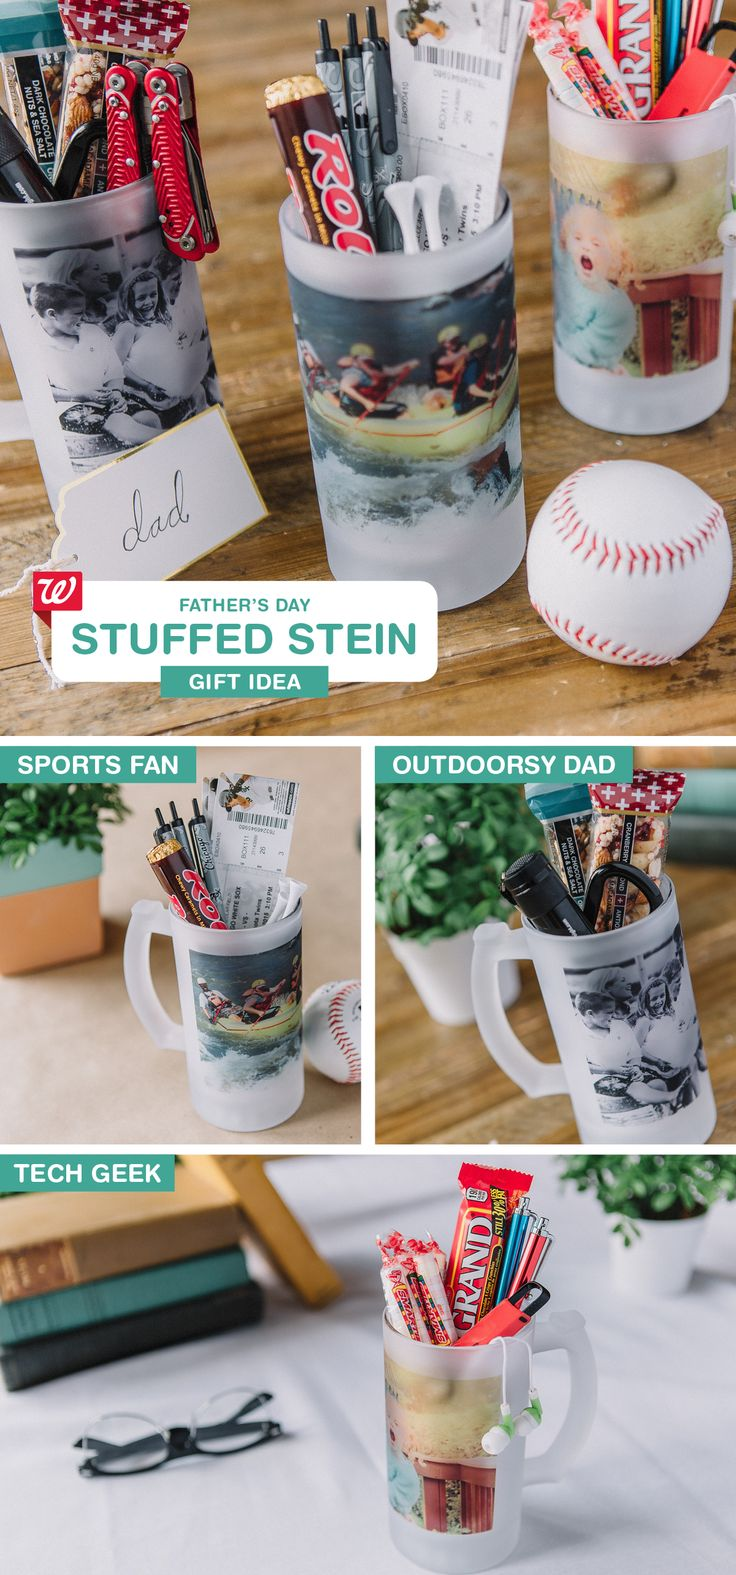 Stuff one of our Frosted Steins with products your dad loves for a personal Father's Day gift! See our Smile blog for stein-stuffer suggestions for sports-, outdoors- and tech-obsessed dads.